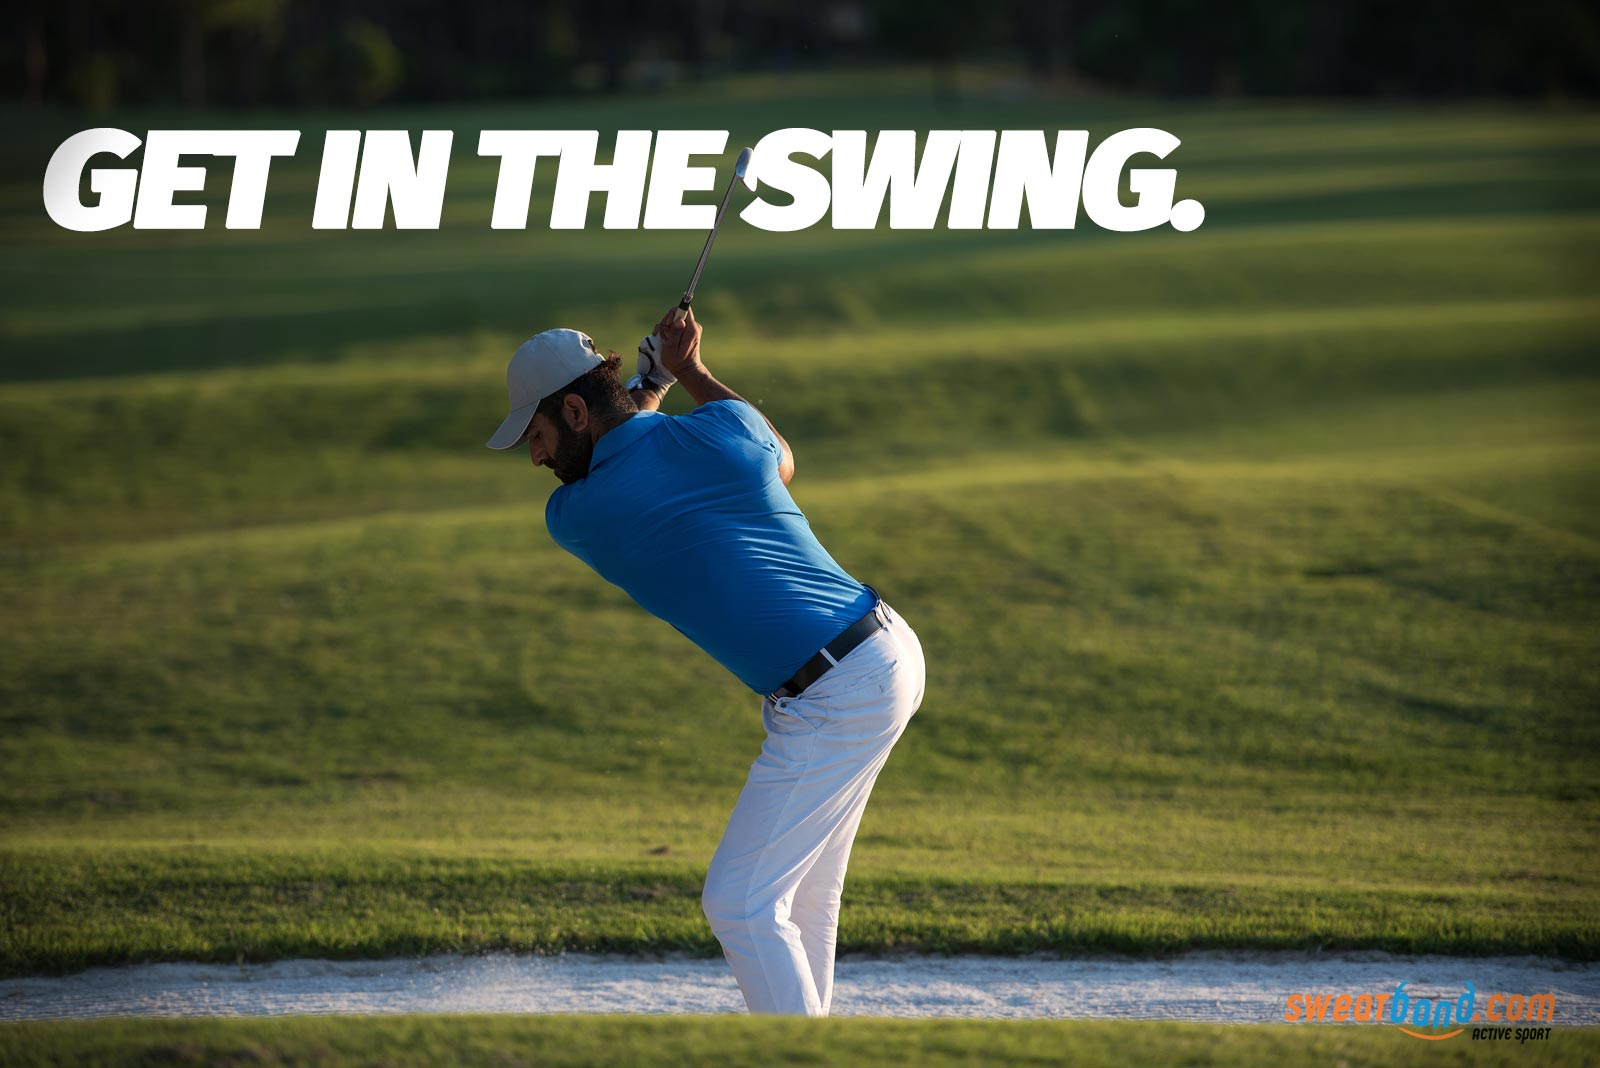 You might be surprise at how good exercise golf actually is - walking, swinging, carrying gear.